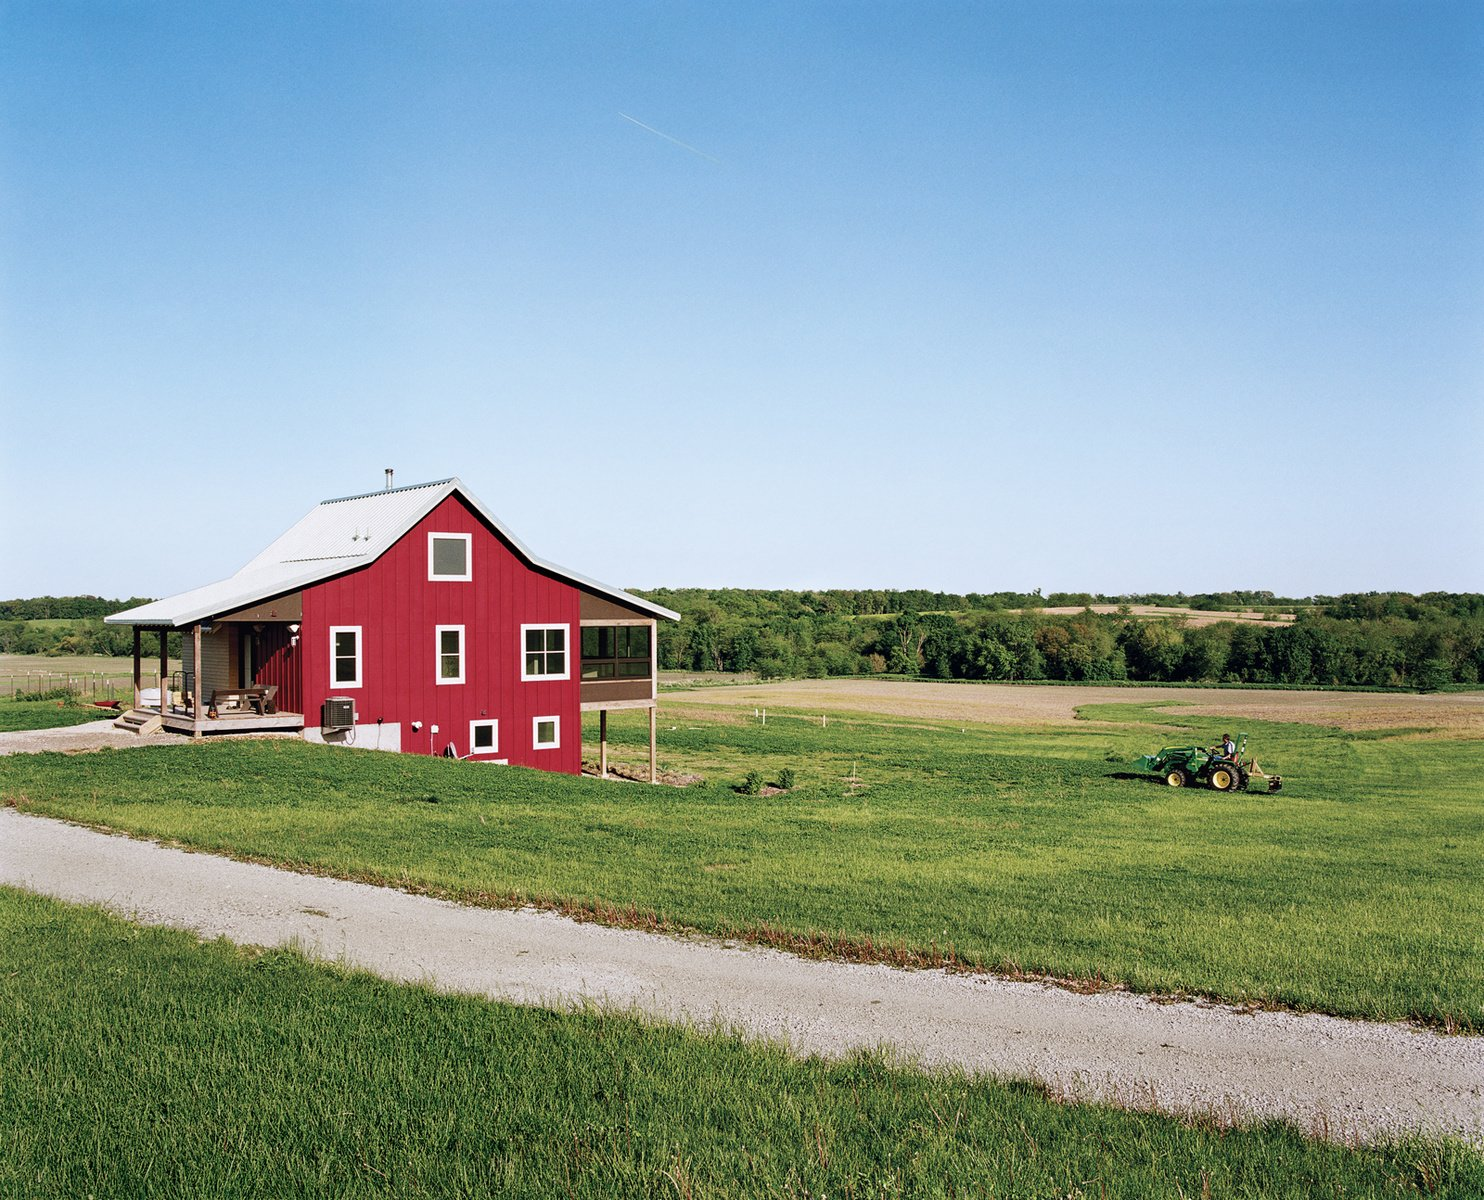 Geoff and Joanna Mouming's compact modern farmhouse is the first permanent structure at Yum Yum Farm in Wellman, Iowa. On the field that stretches out before it, organic vegetables will soon make attentive farmers of the Moumings. Photo by: Mark Mahaney  Photo 19 of 20 in 20 Modern Homes From the Midwest from Modern Homes Across the American Midwest